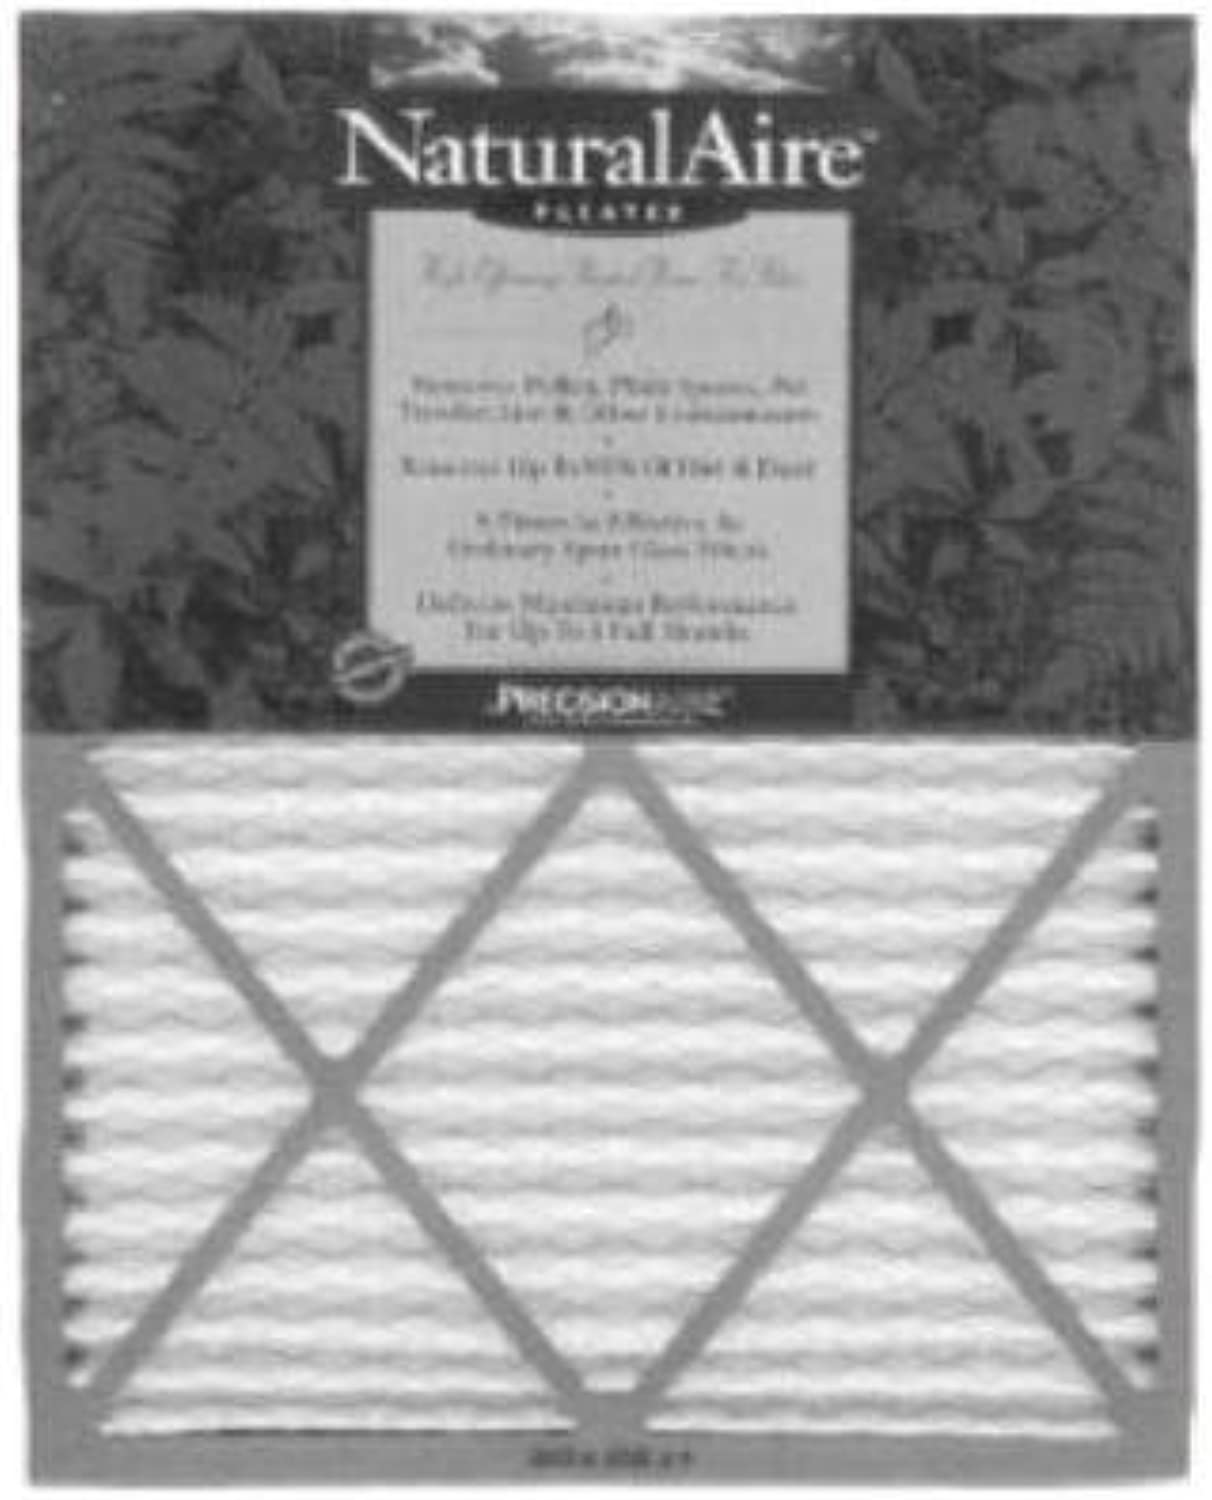 20  x 20  x 1 , Merv 8 Naturalaire Standard Pleated Media Home Furnace Air Filter, Box of 12 Filters